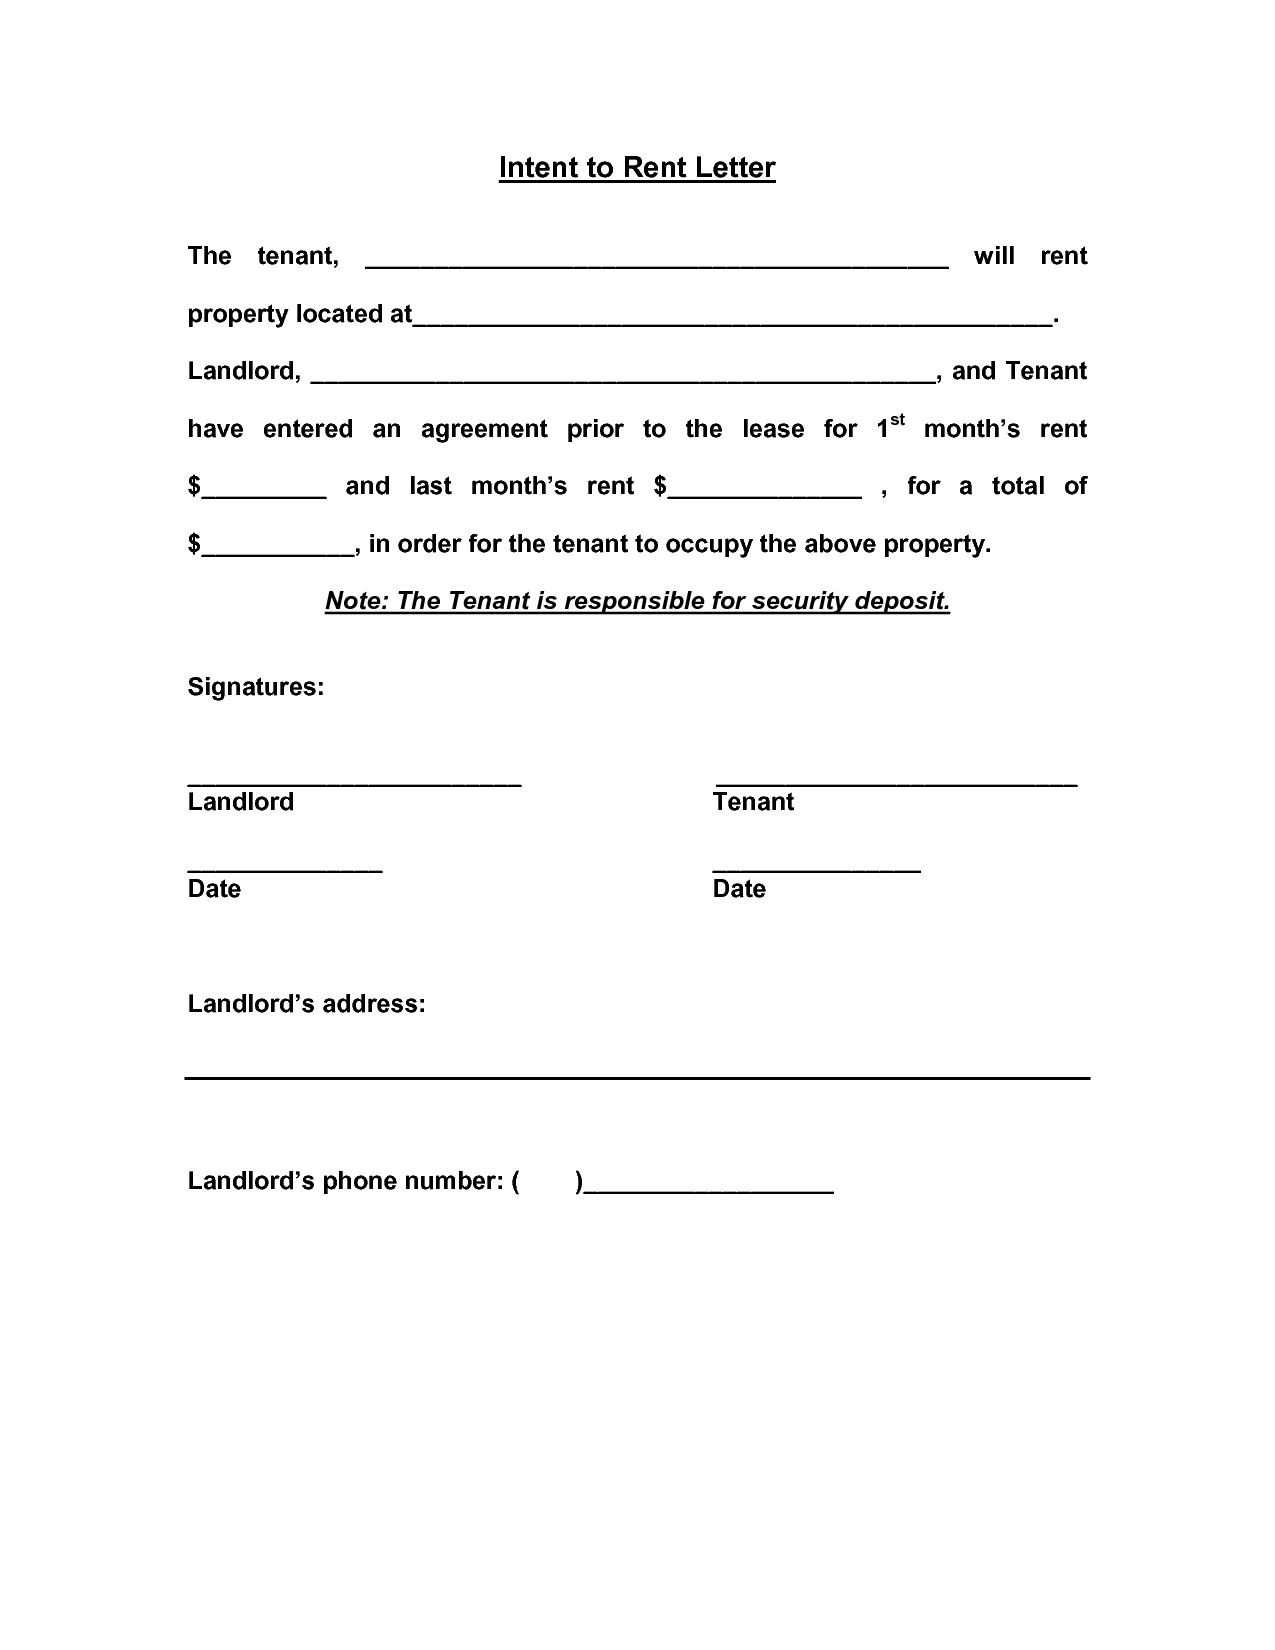 Letter Of Intent to Rent Template - Sample Certificate Free Rental Awesome Residential Intent to